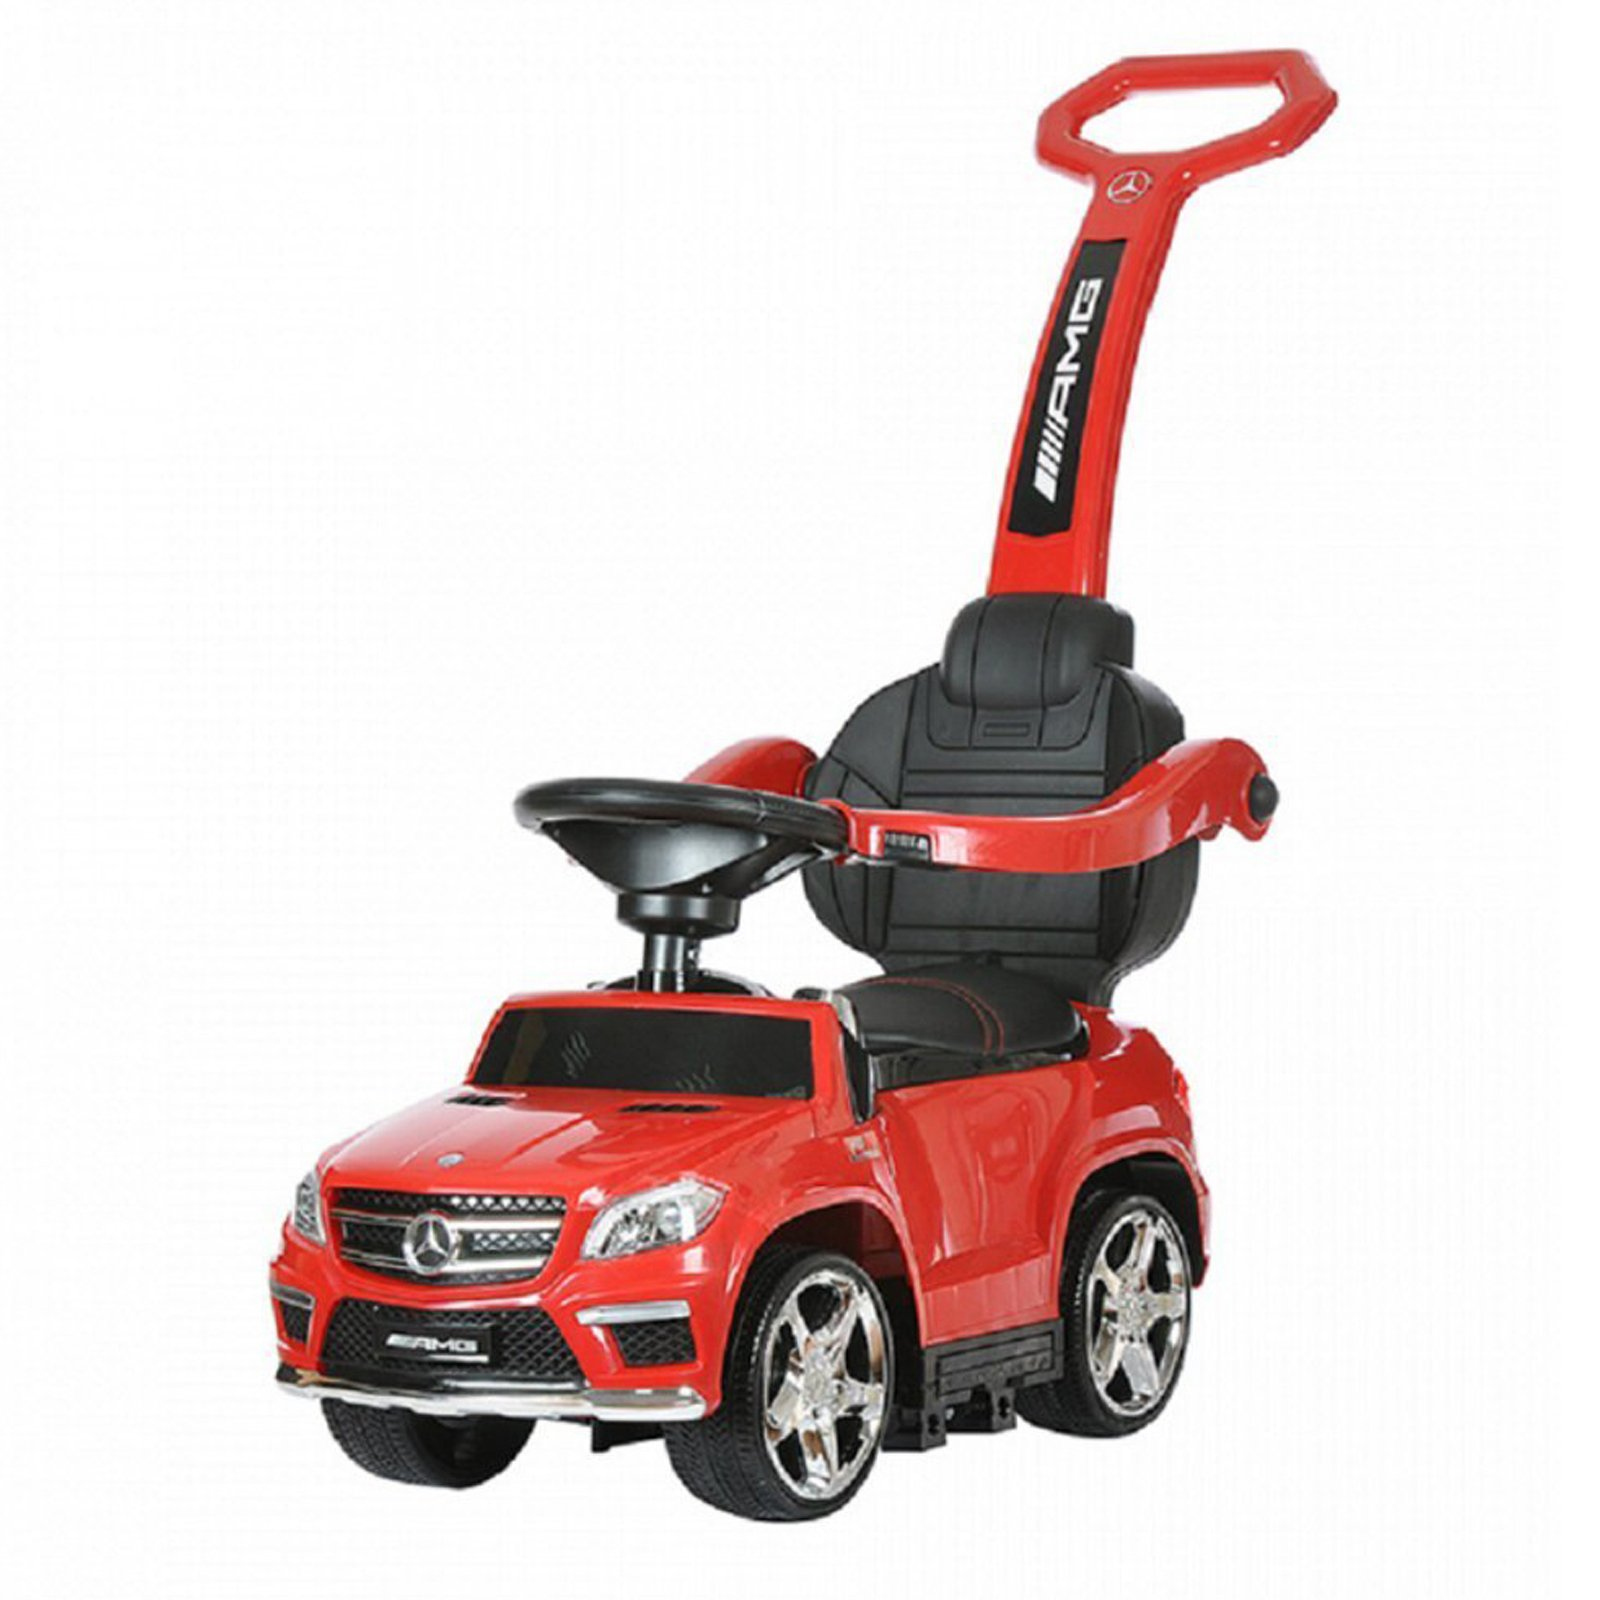 KidPlay Products 4 in 1 Ride On Mercedes PC - Red